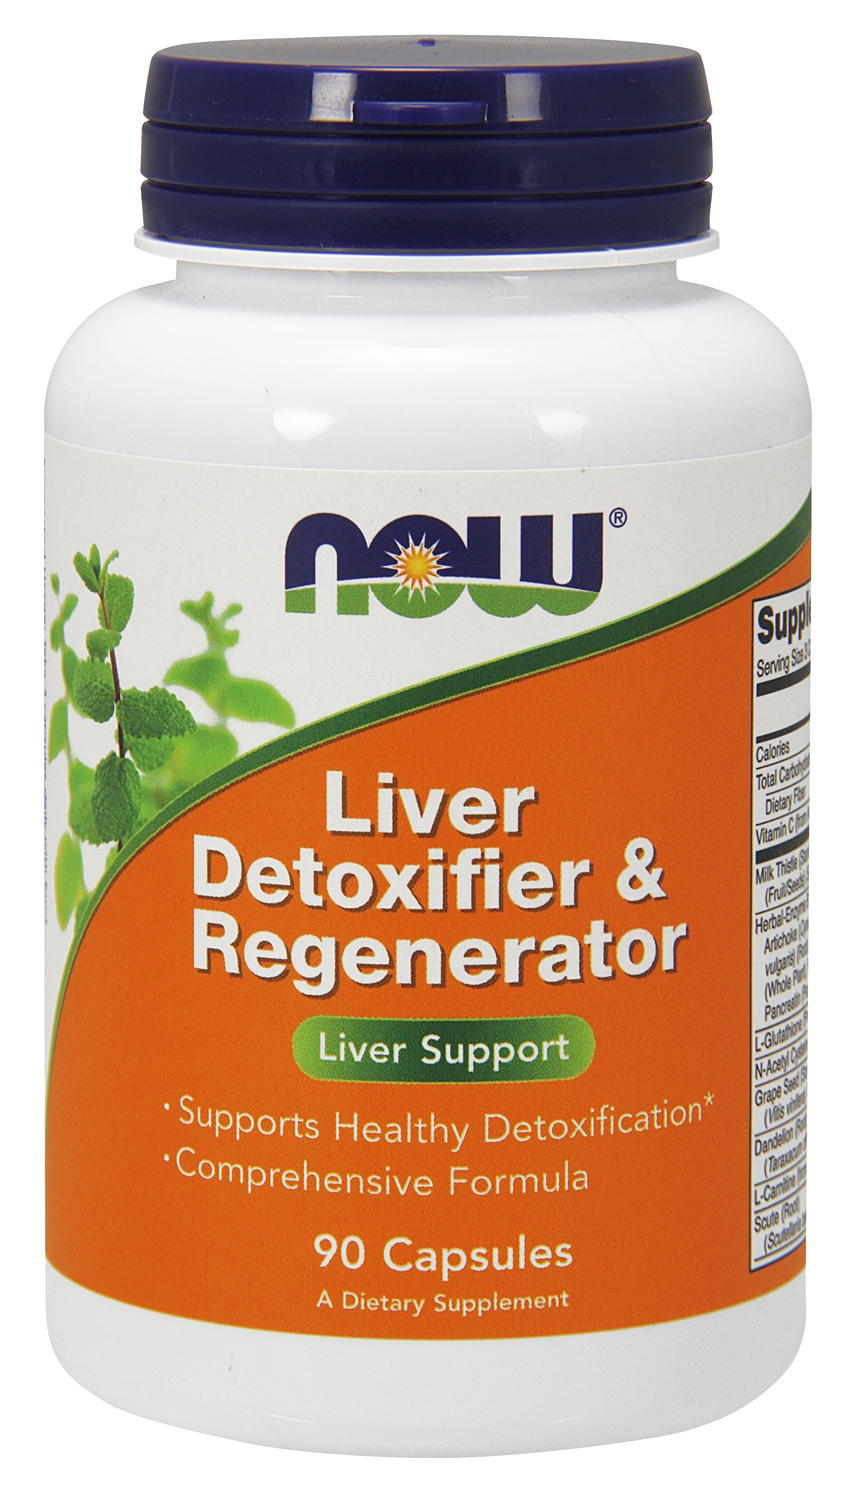 Liver Detoxifier & Regenerator 90 caps by NOW